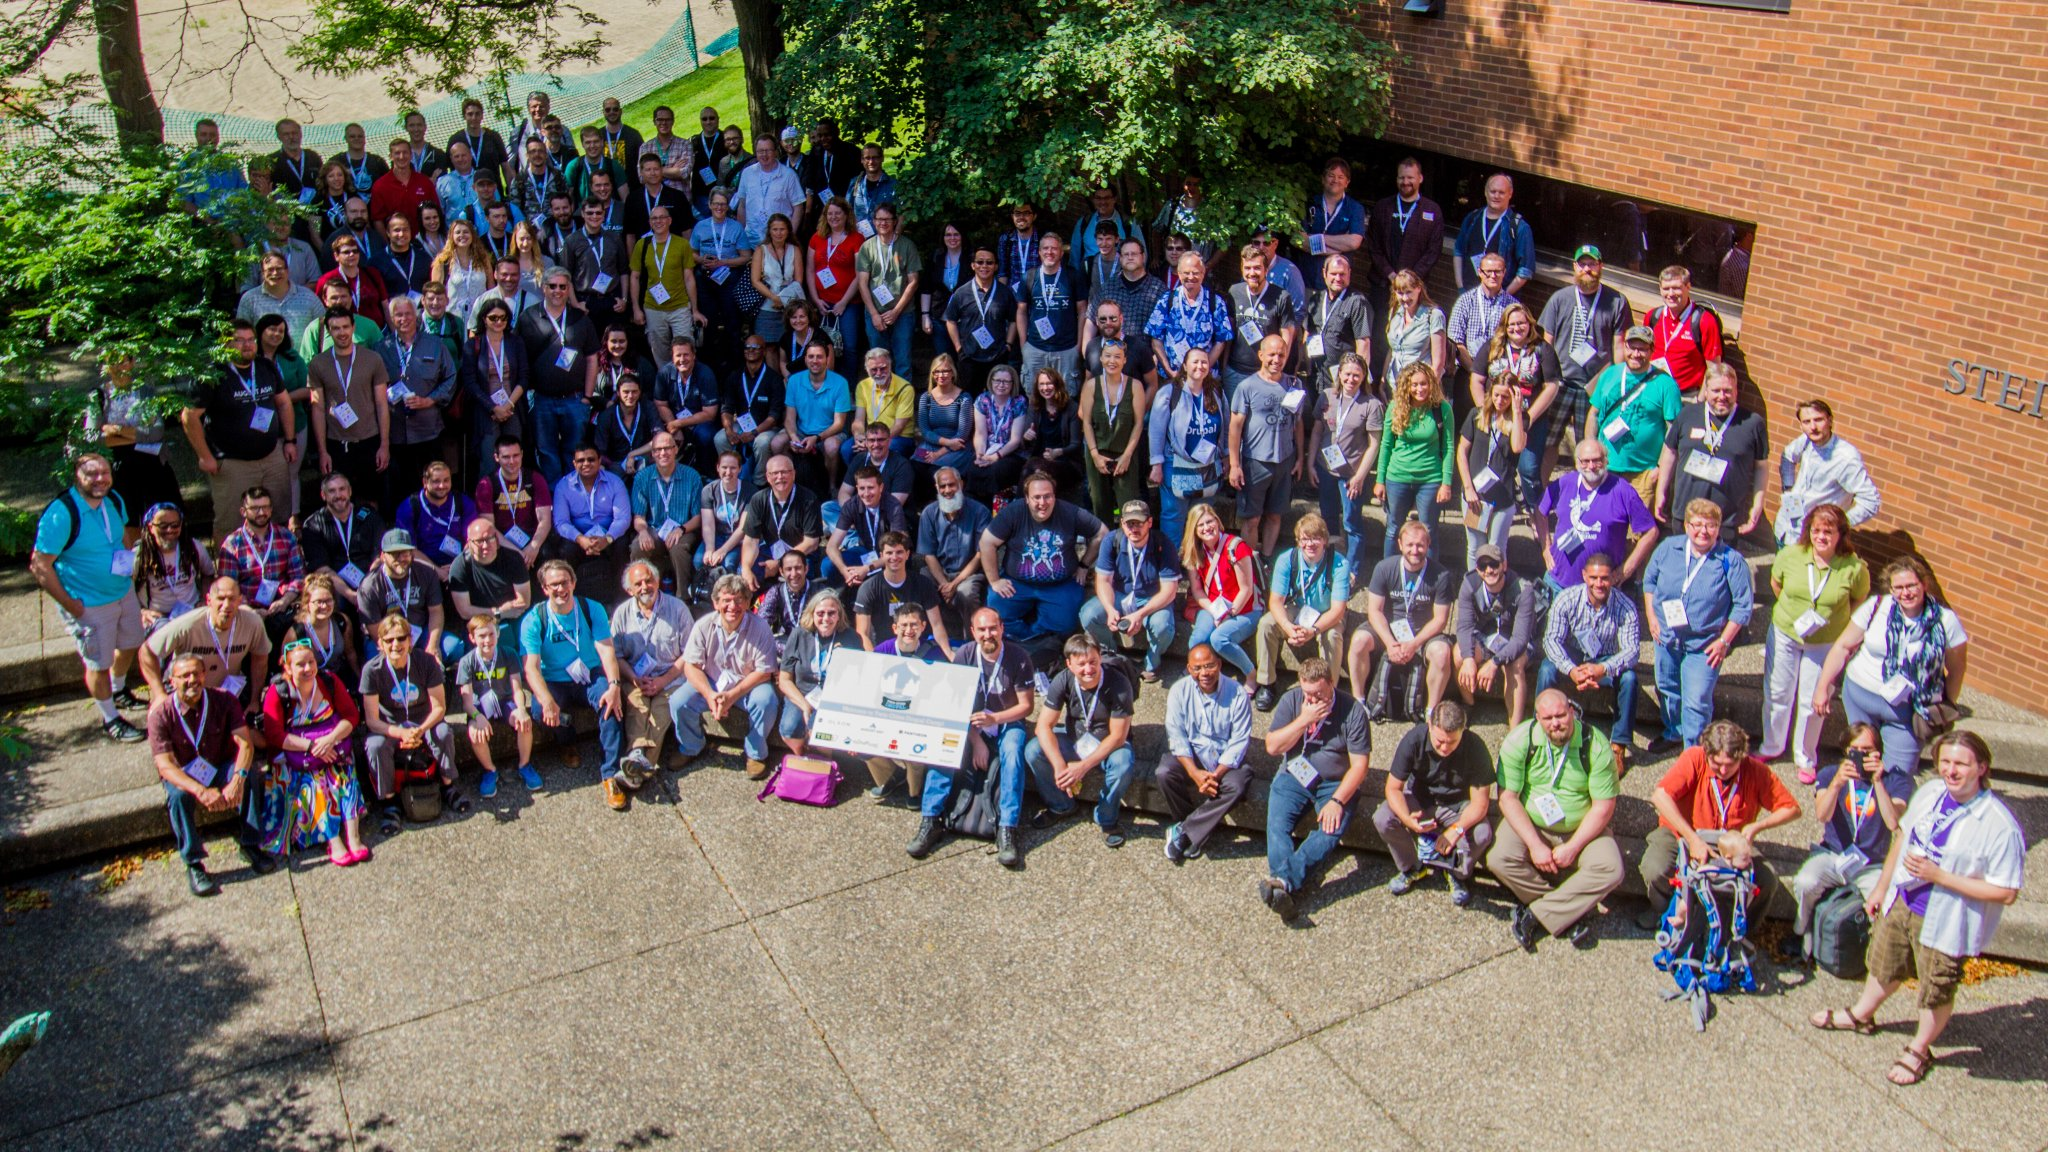 Group photo of attendees from 2016 Twin Cities Drupal Camp